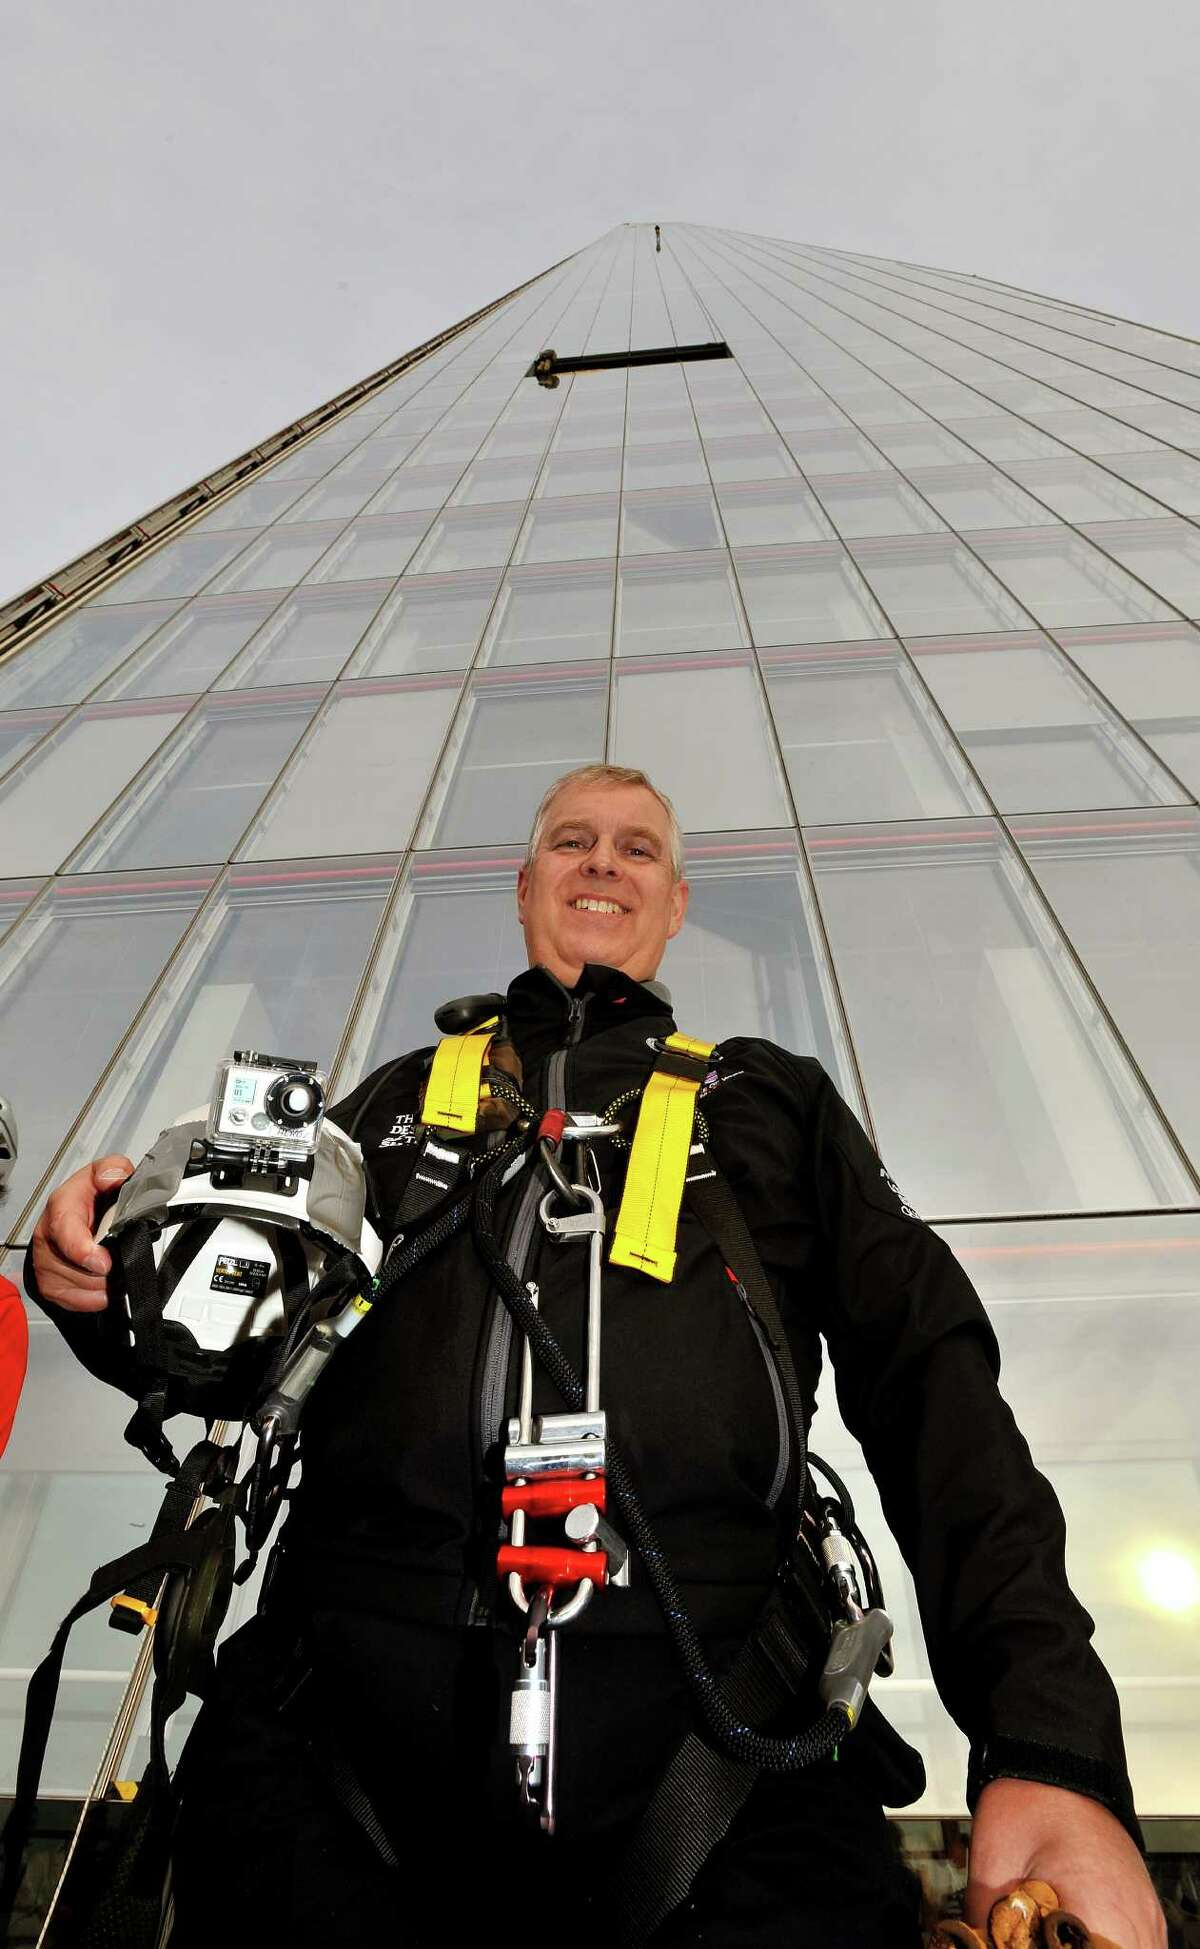 LONDON, UNITED KINGDOM - SEPTEMBER 03: Prince Andrew, Duke of York stands in front of the south east face after abseiling down the Shard to raise money for charity on September 03, 2012 in London, England. The Prince joined with 40 other people in abseiling down the tallest building for the educational charity The Outward Bound Trust and the Royal Marines Charitable Trust Fund.